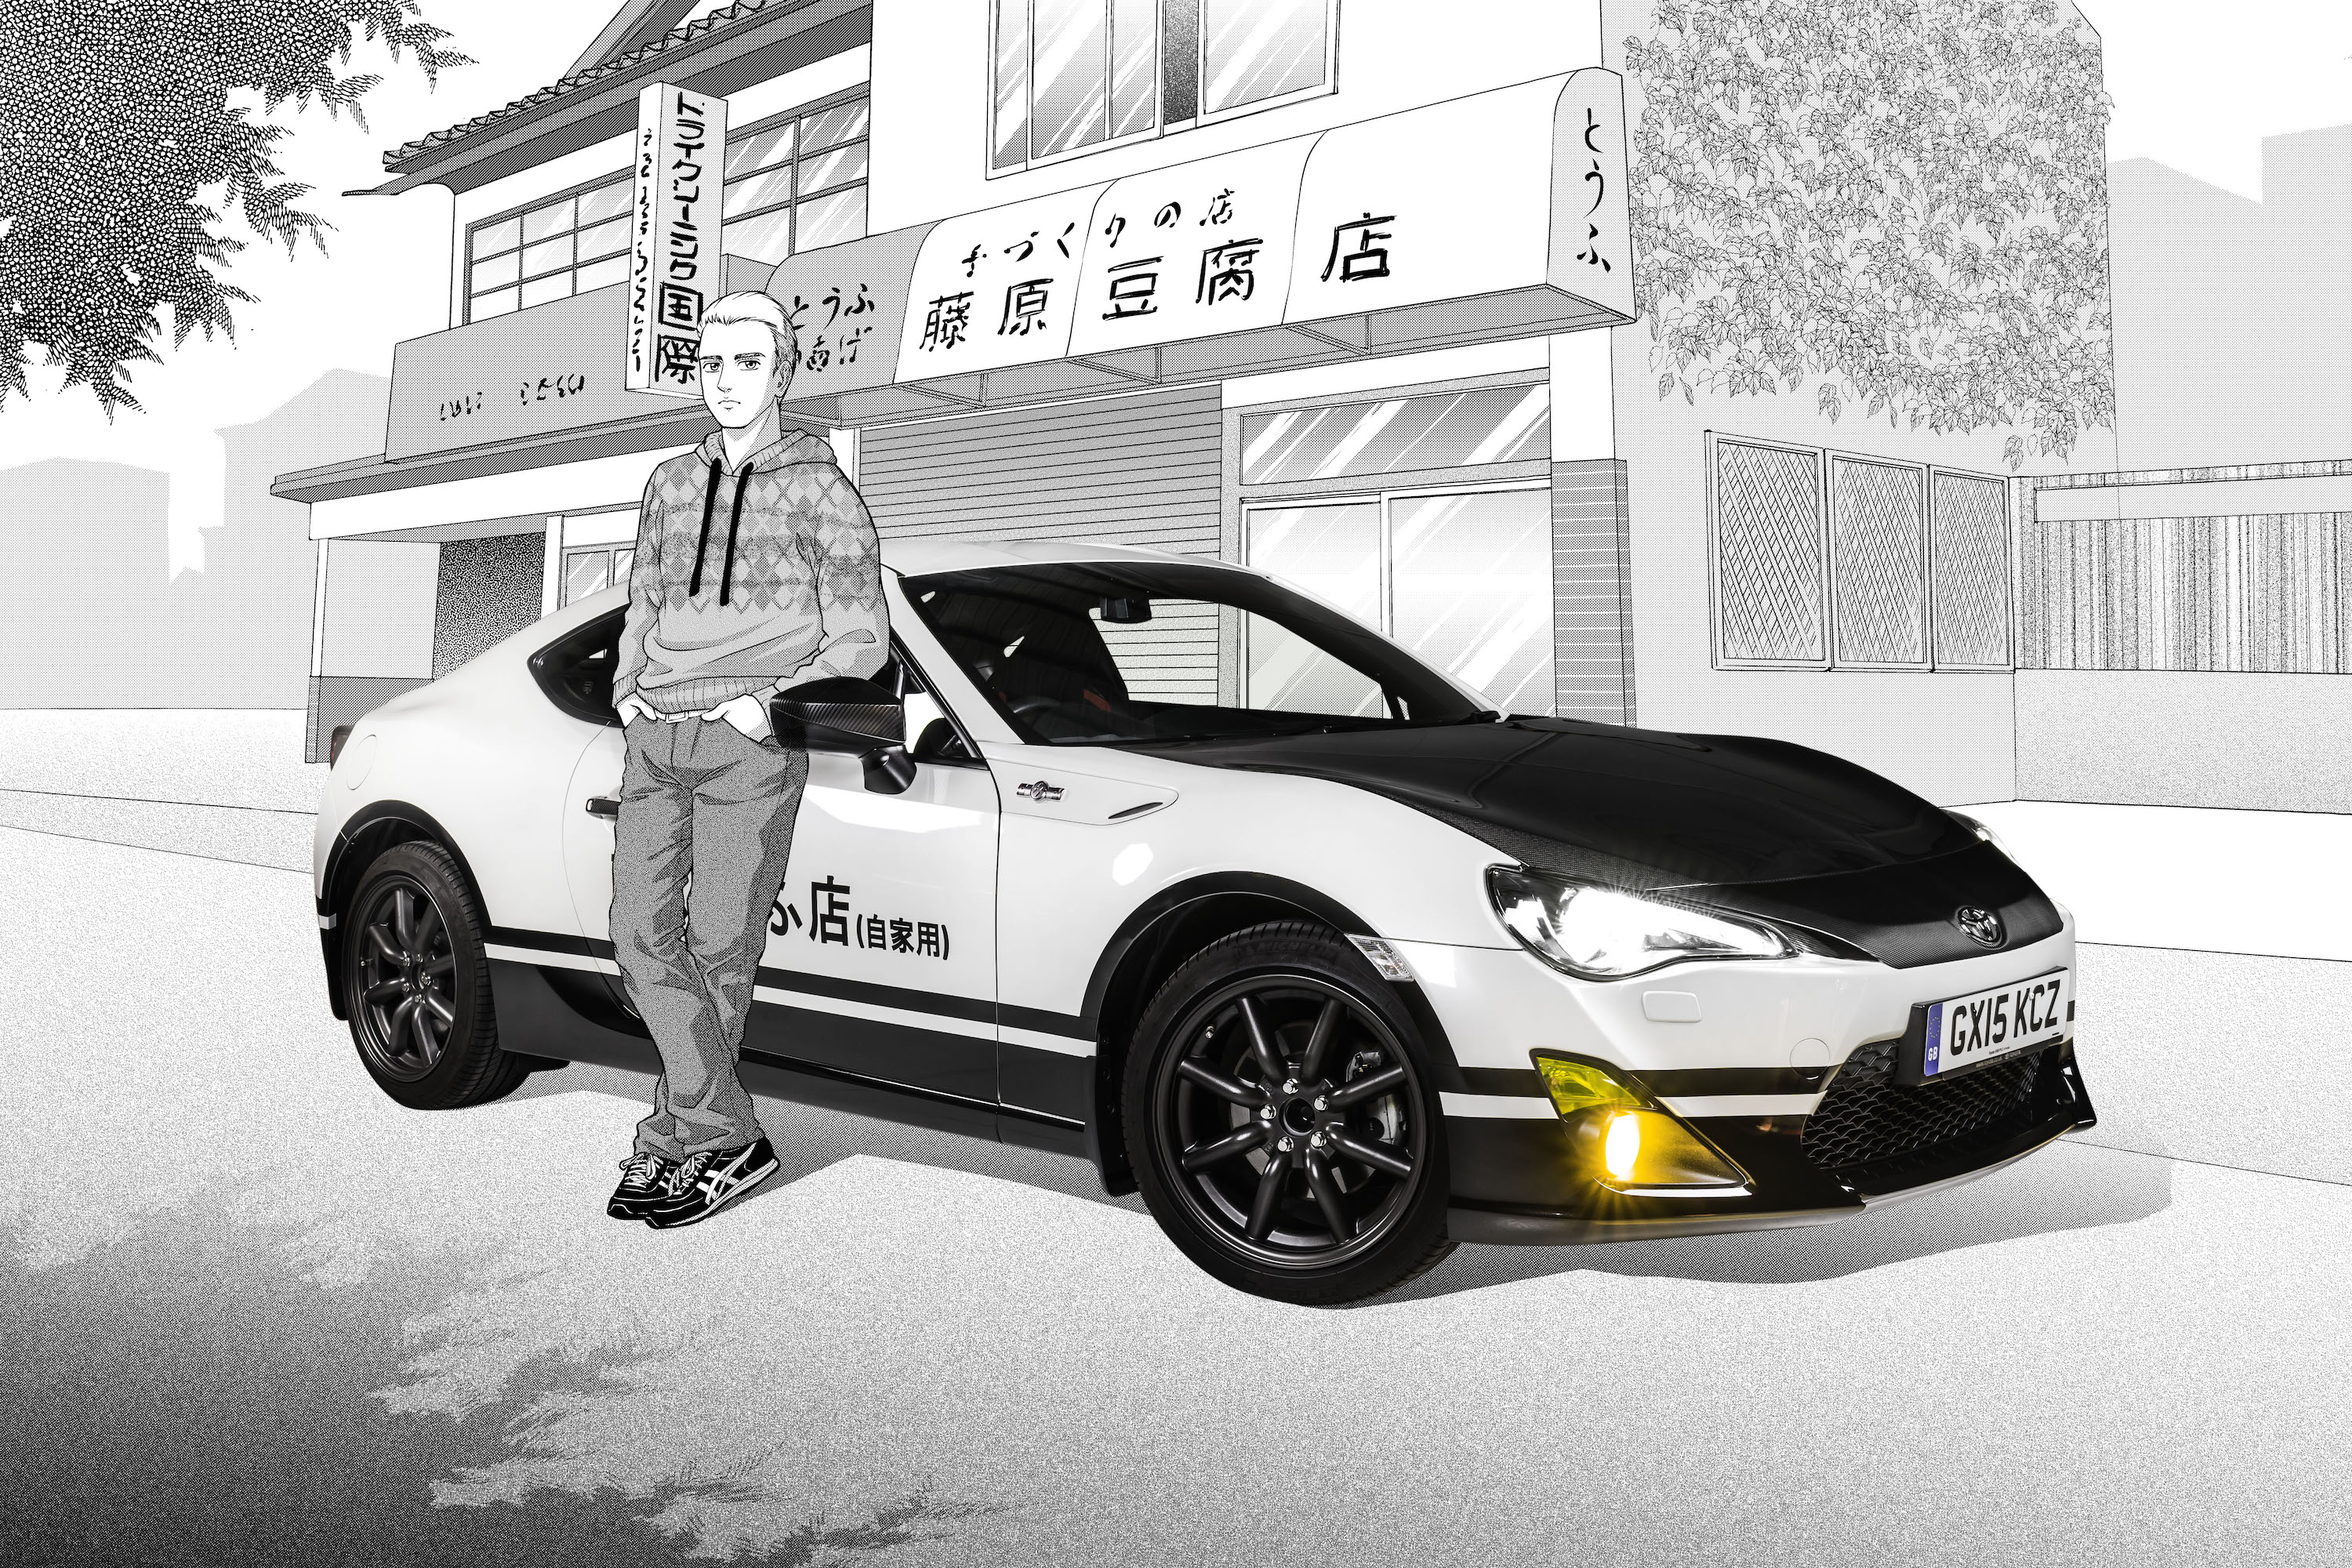 The Toyota GT86 Initial D Concept Is An Awesome Car Based Manga 3000x2000